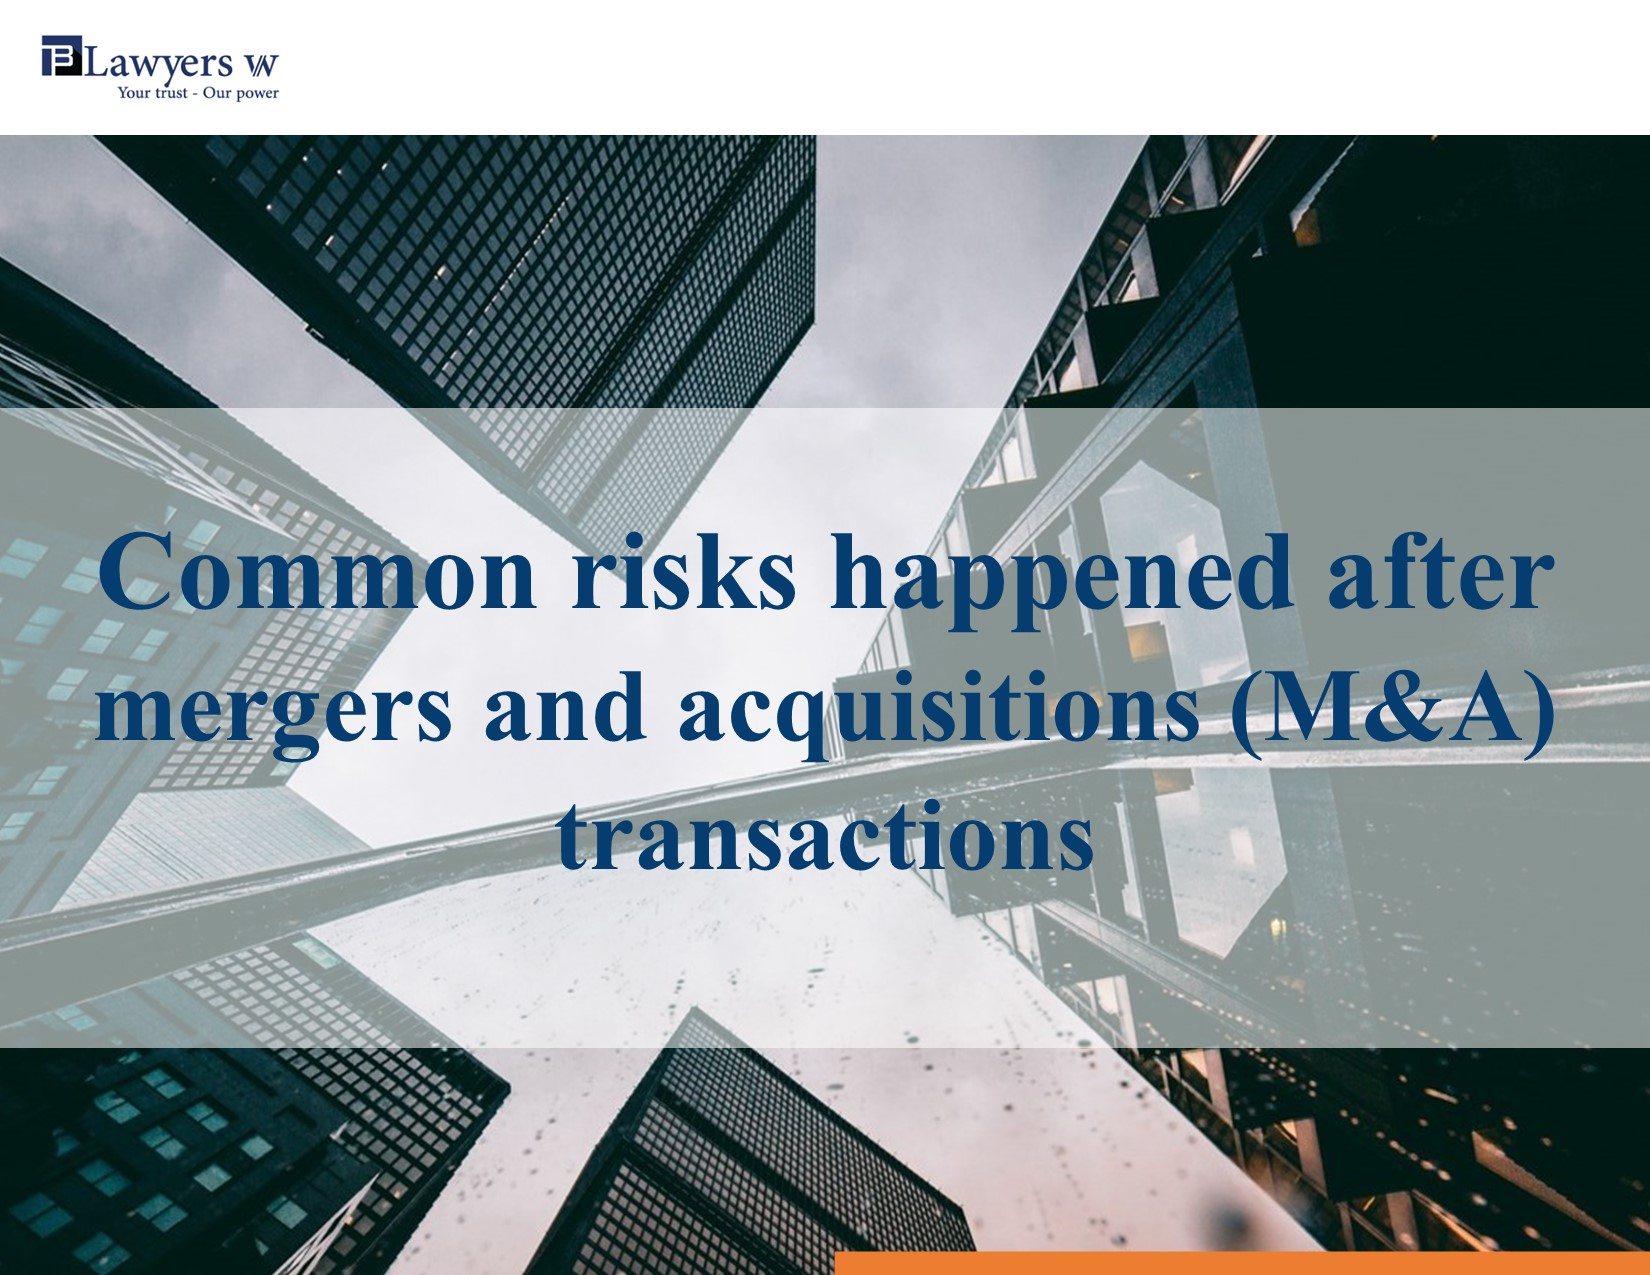 Common risks happened after mergers and acquisitions (M&A) transactions